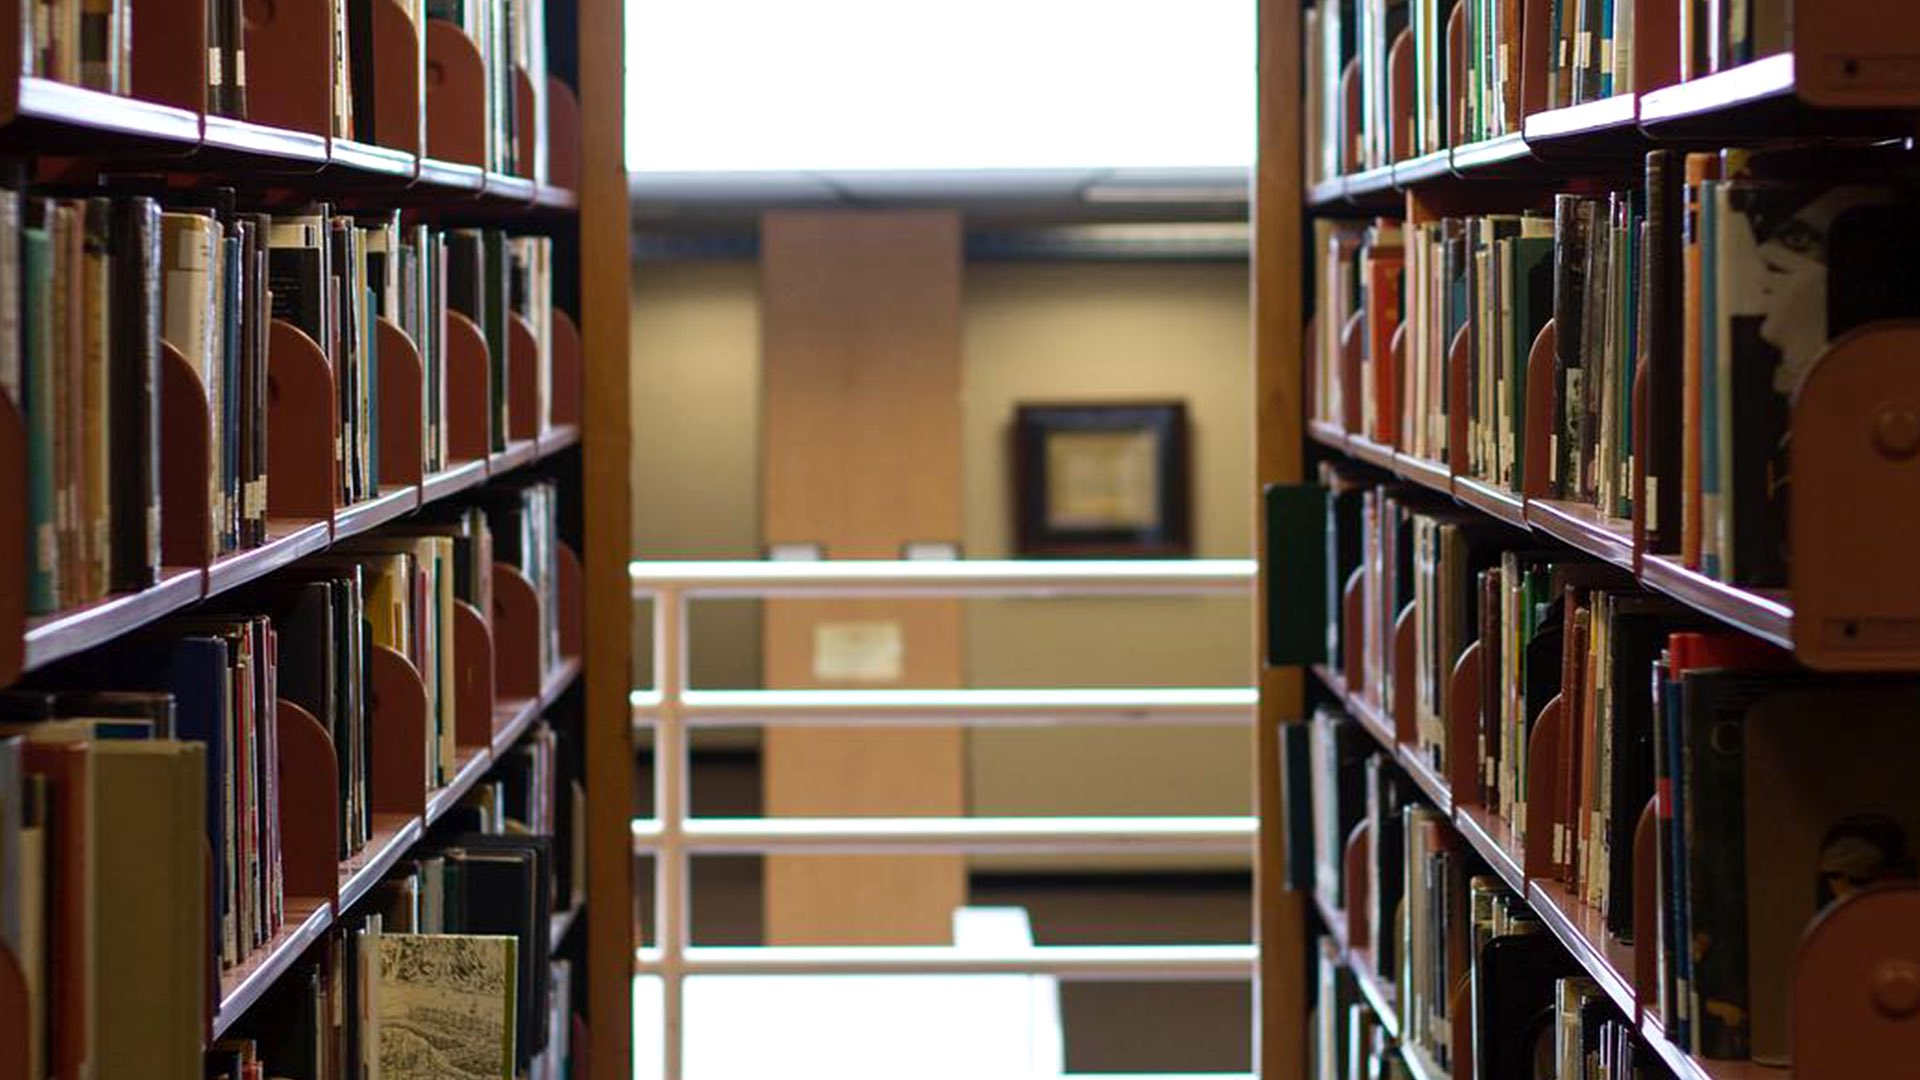 Library Shelves Background - Design Preview